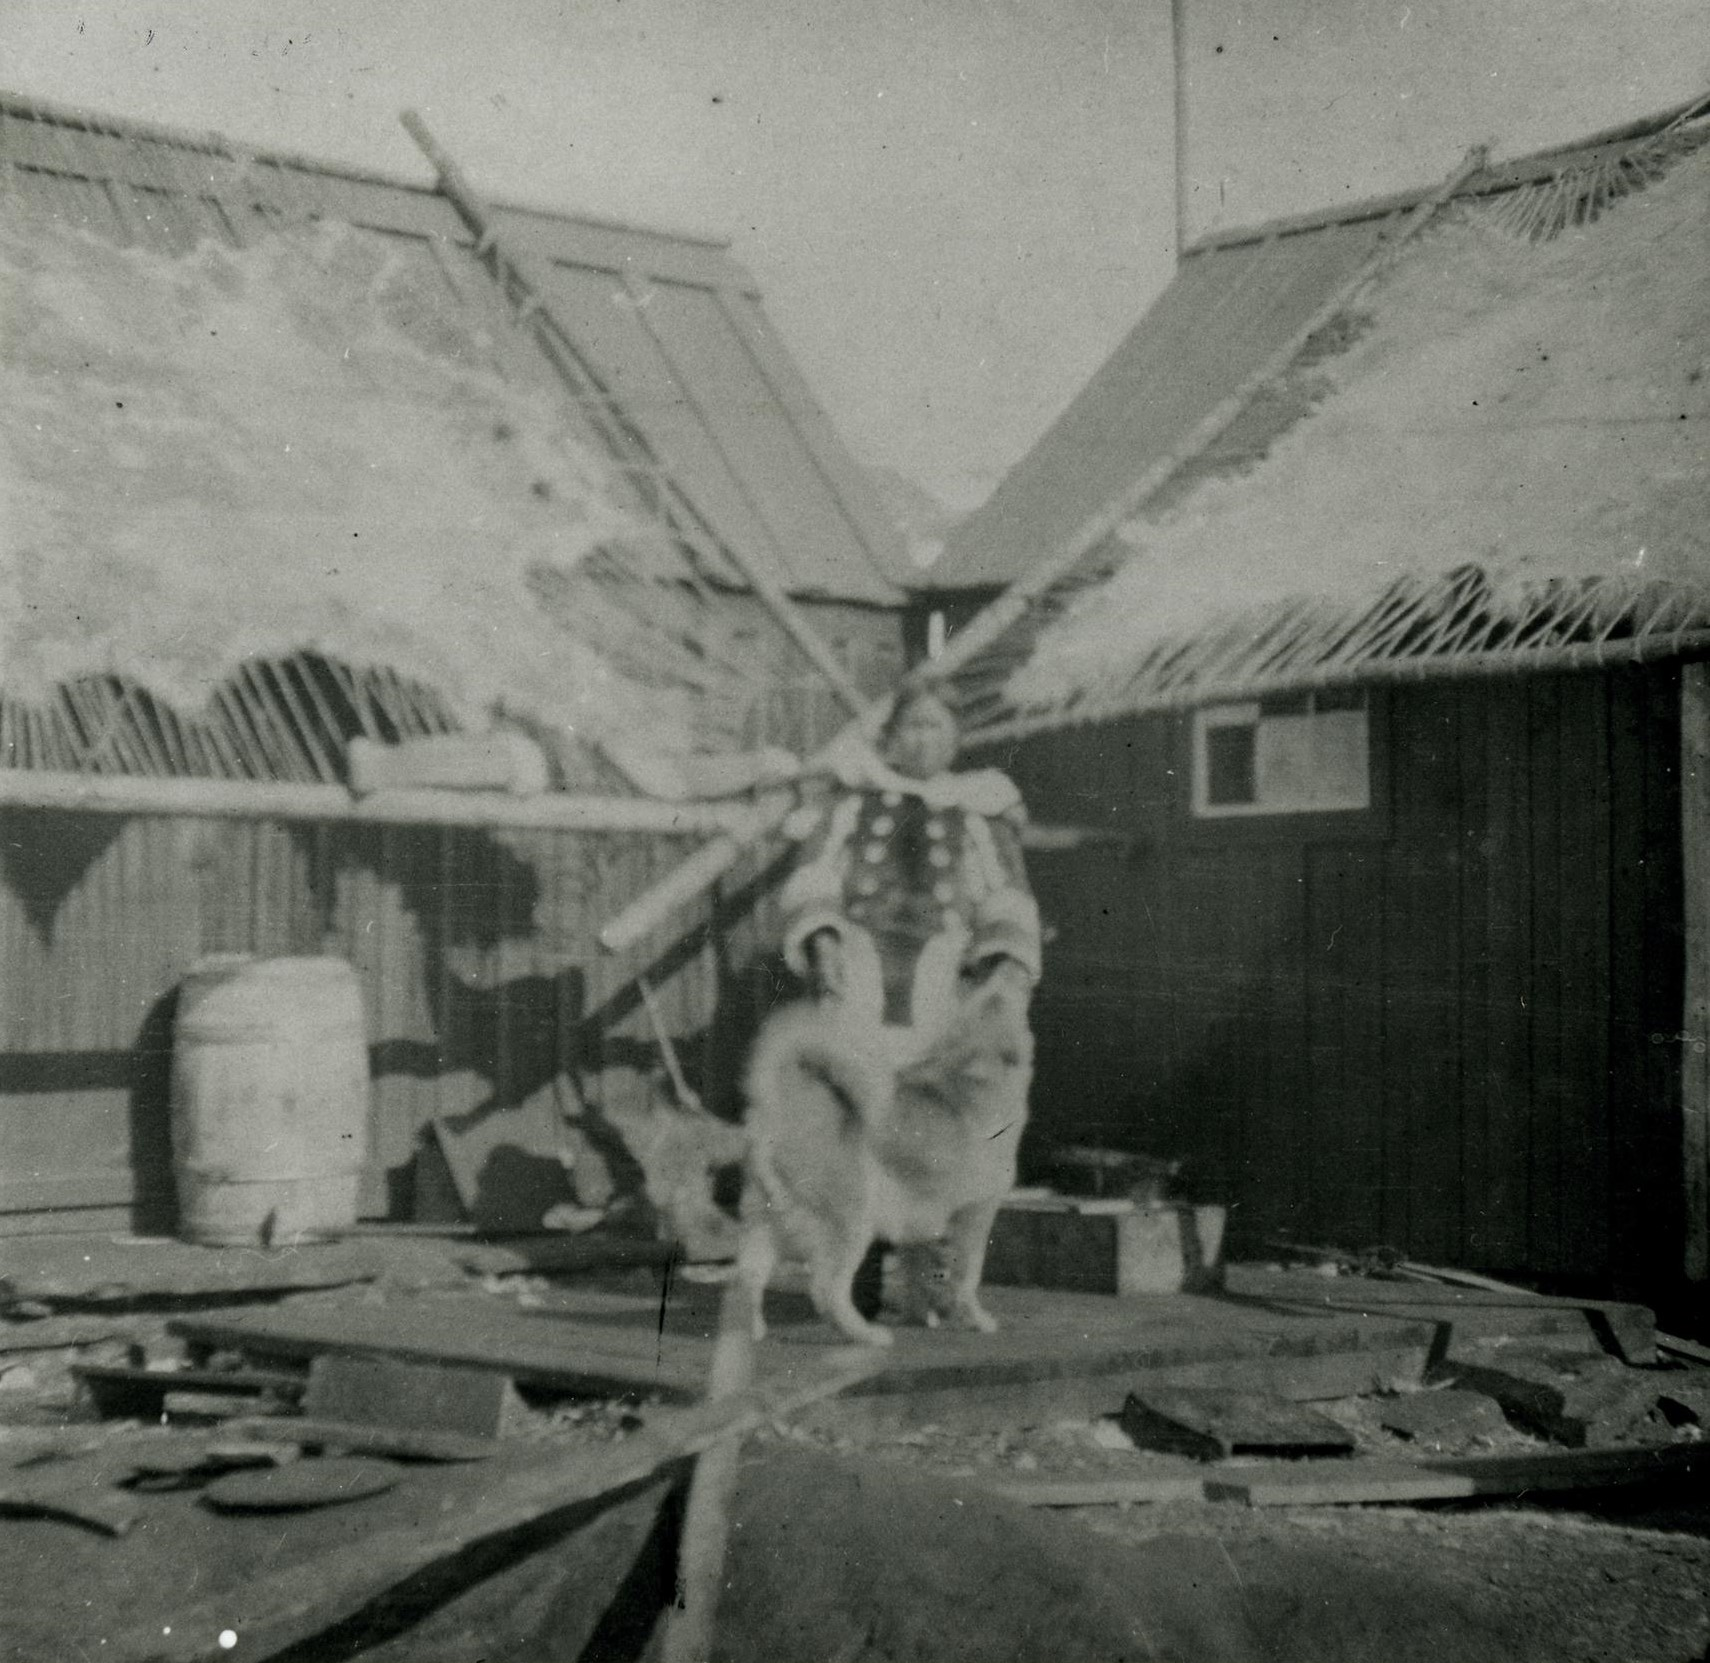 Photograph (black and white)  showing view of two pieces of skin stretched out on two drying frames, placed on top of two timber framed roofs. An Inuit woman stands in the foreground wearing a fur parka with a dog standing in front of her. There are pieces of timber in the foreground and a barrel beside the building on the left.